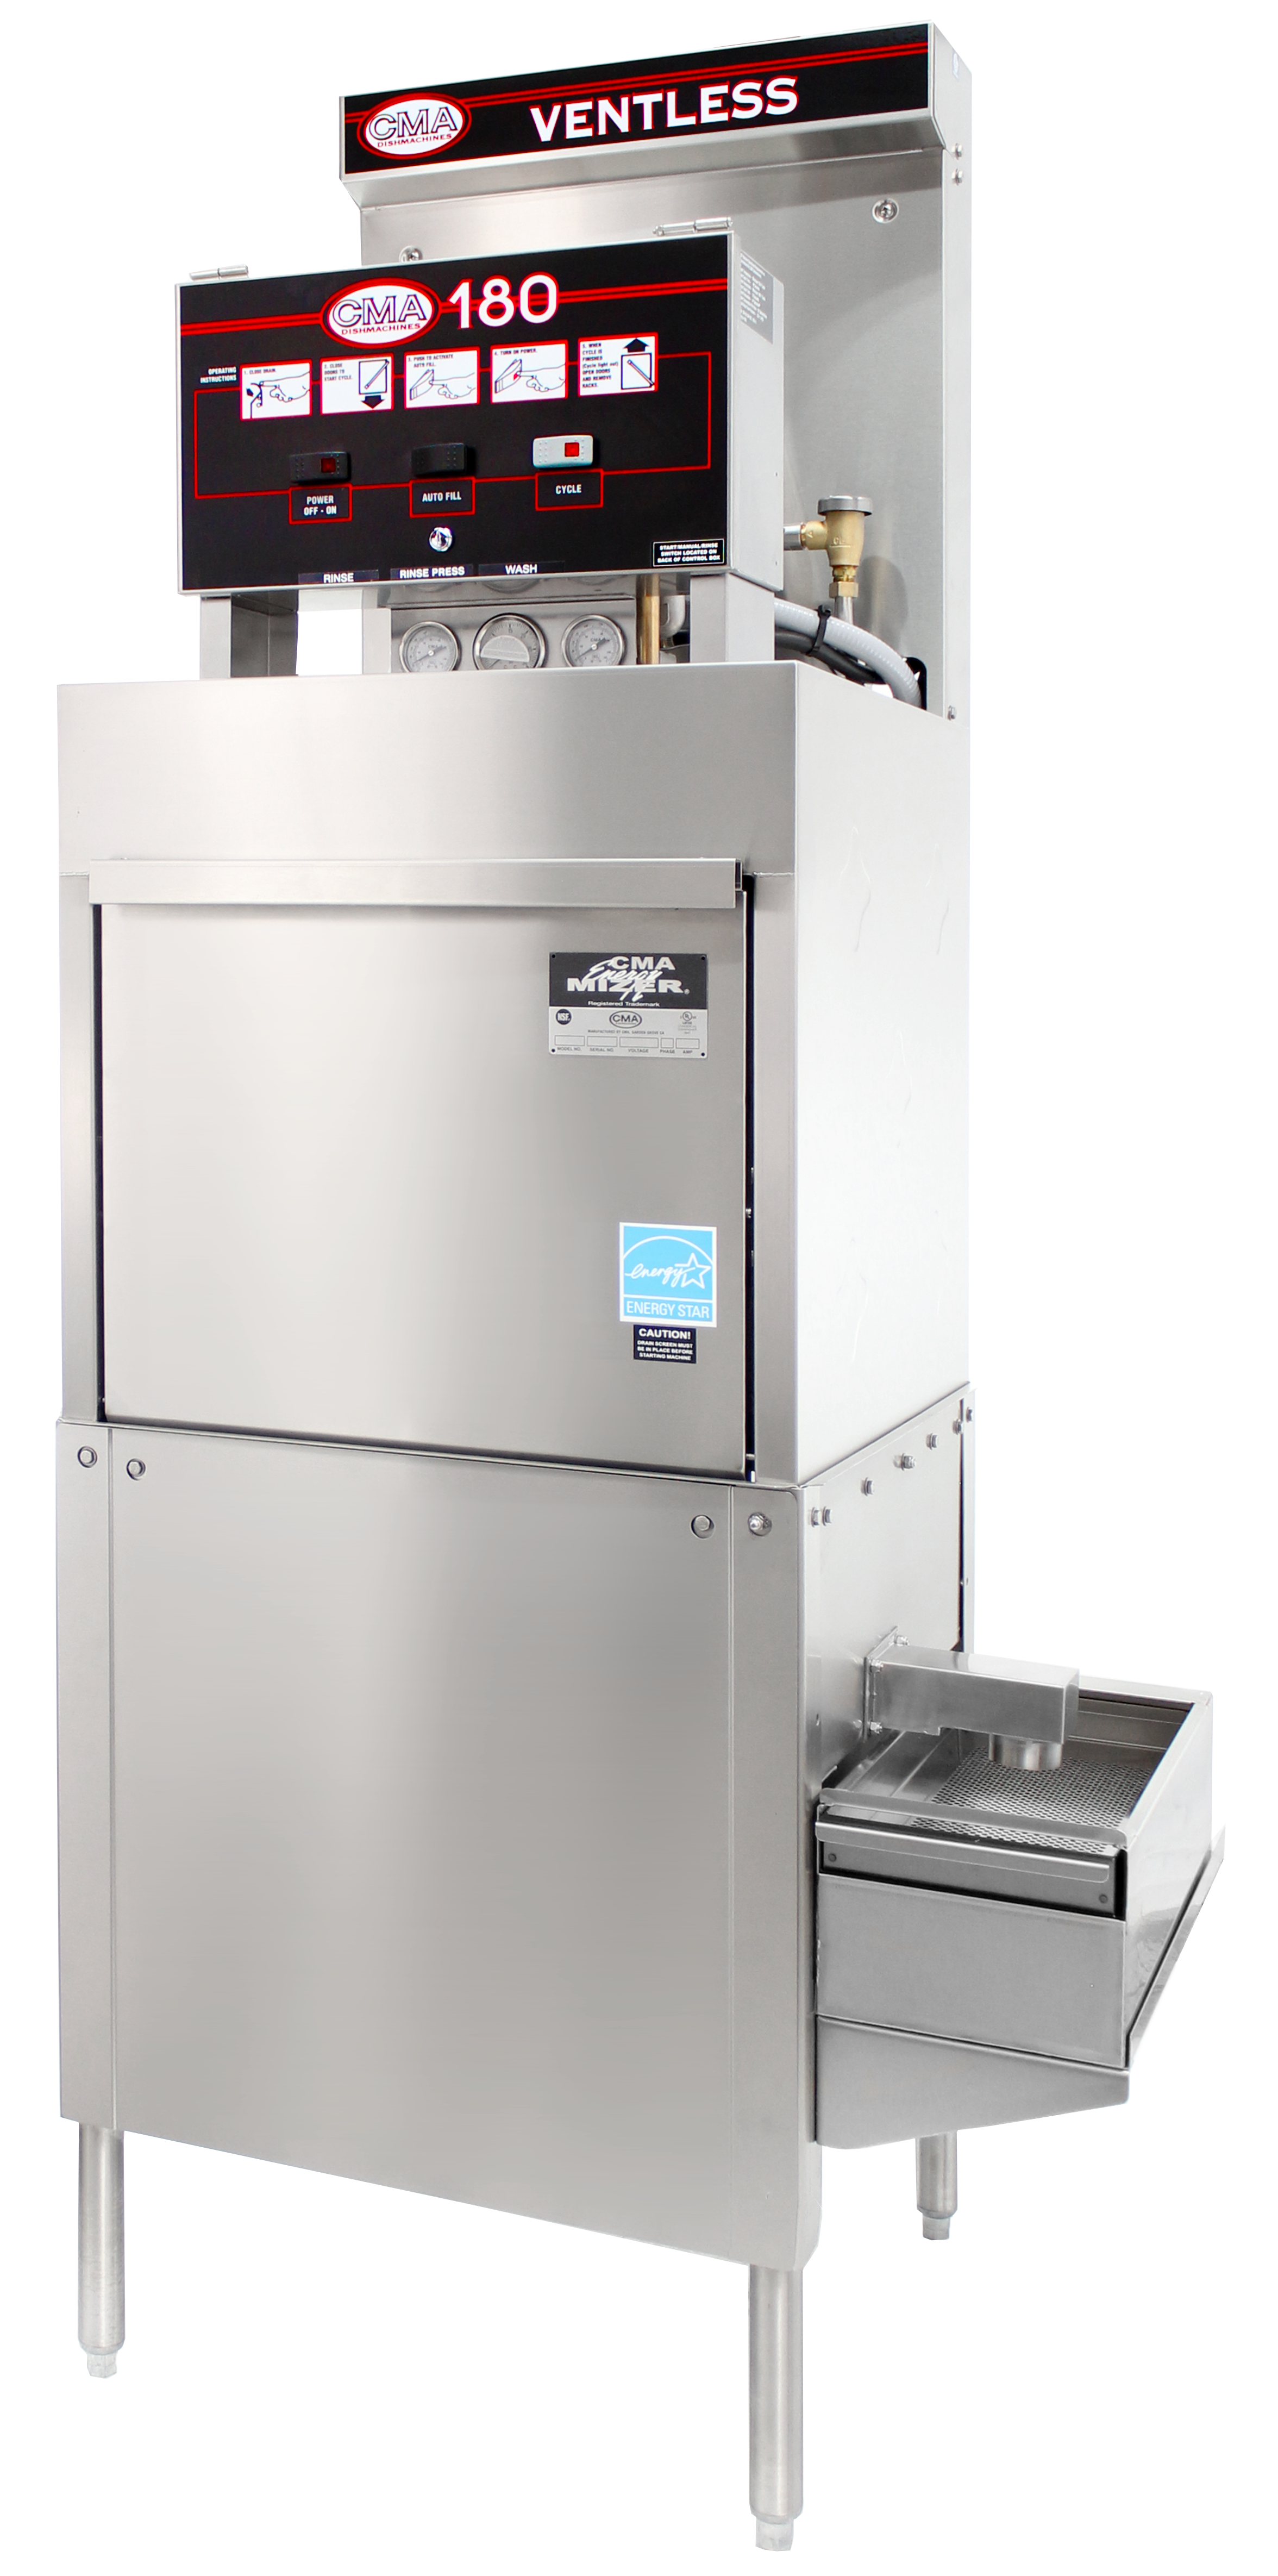 CMA Dishmachines 180-VLFL dishwasher, door type, ventless